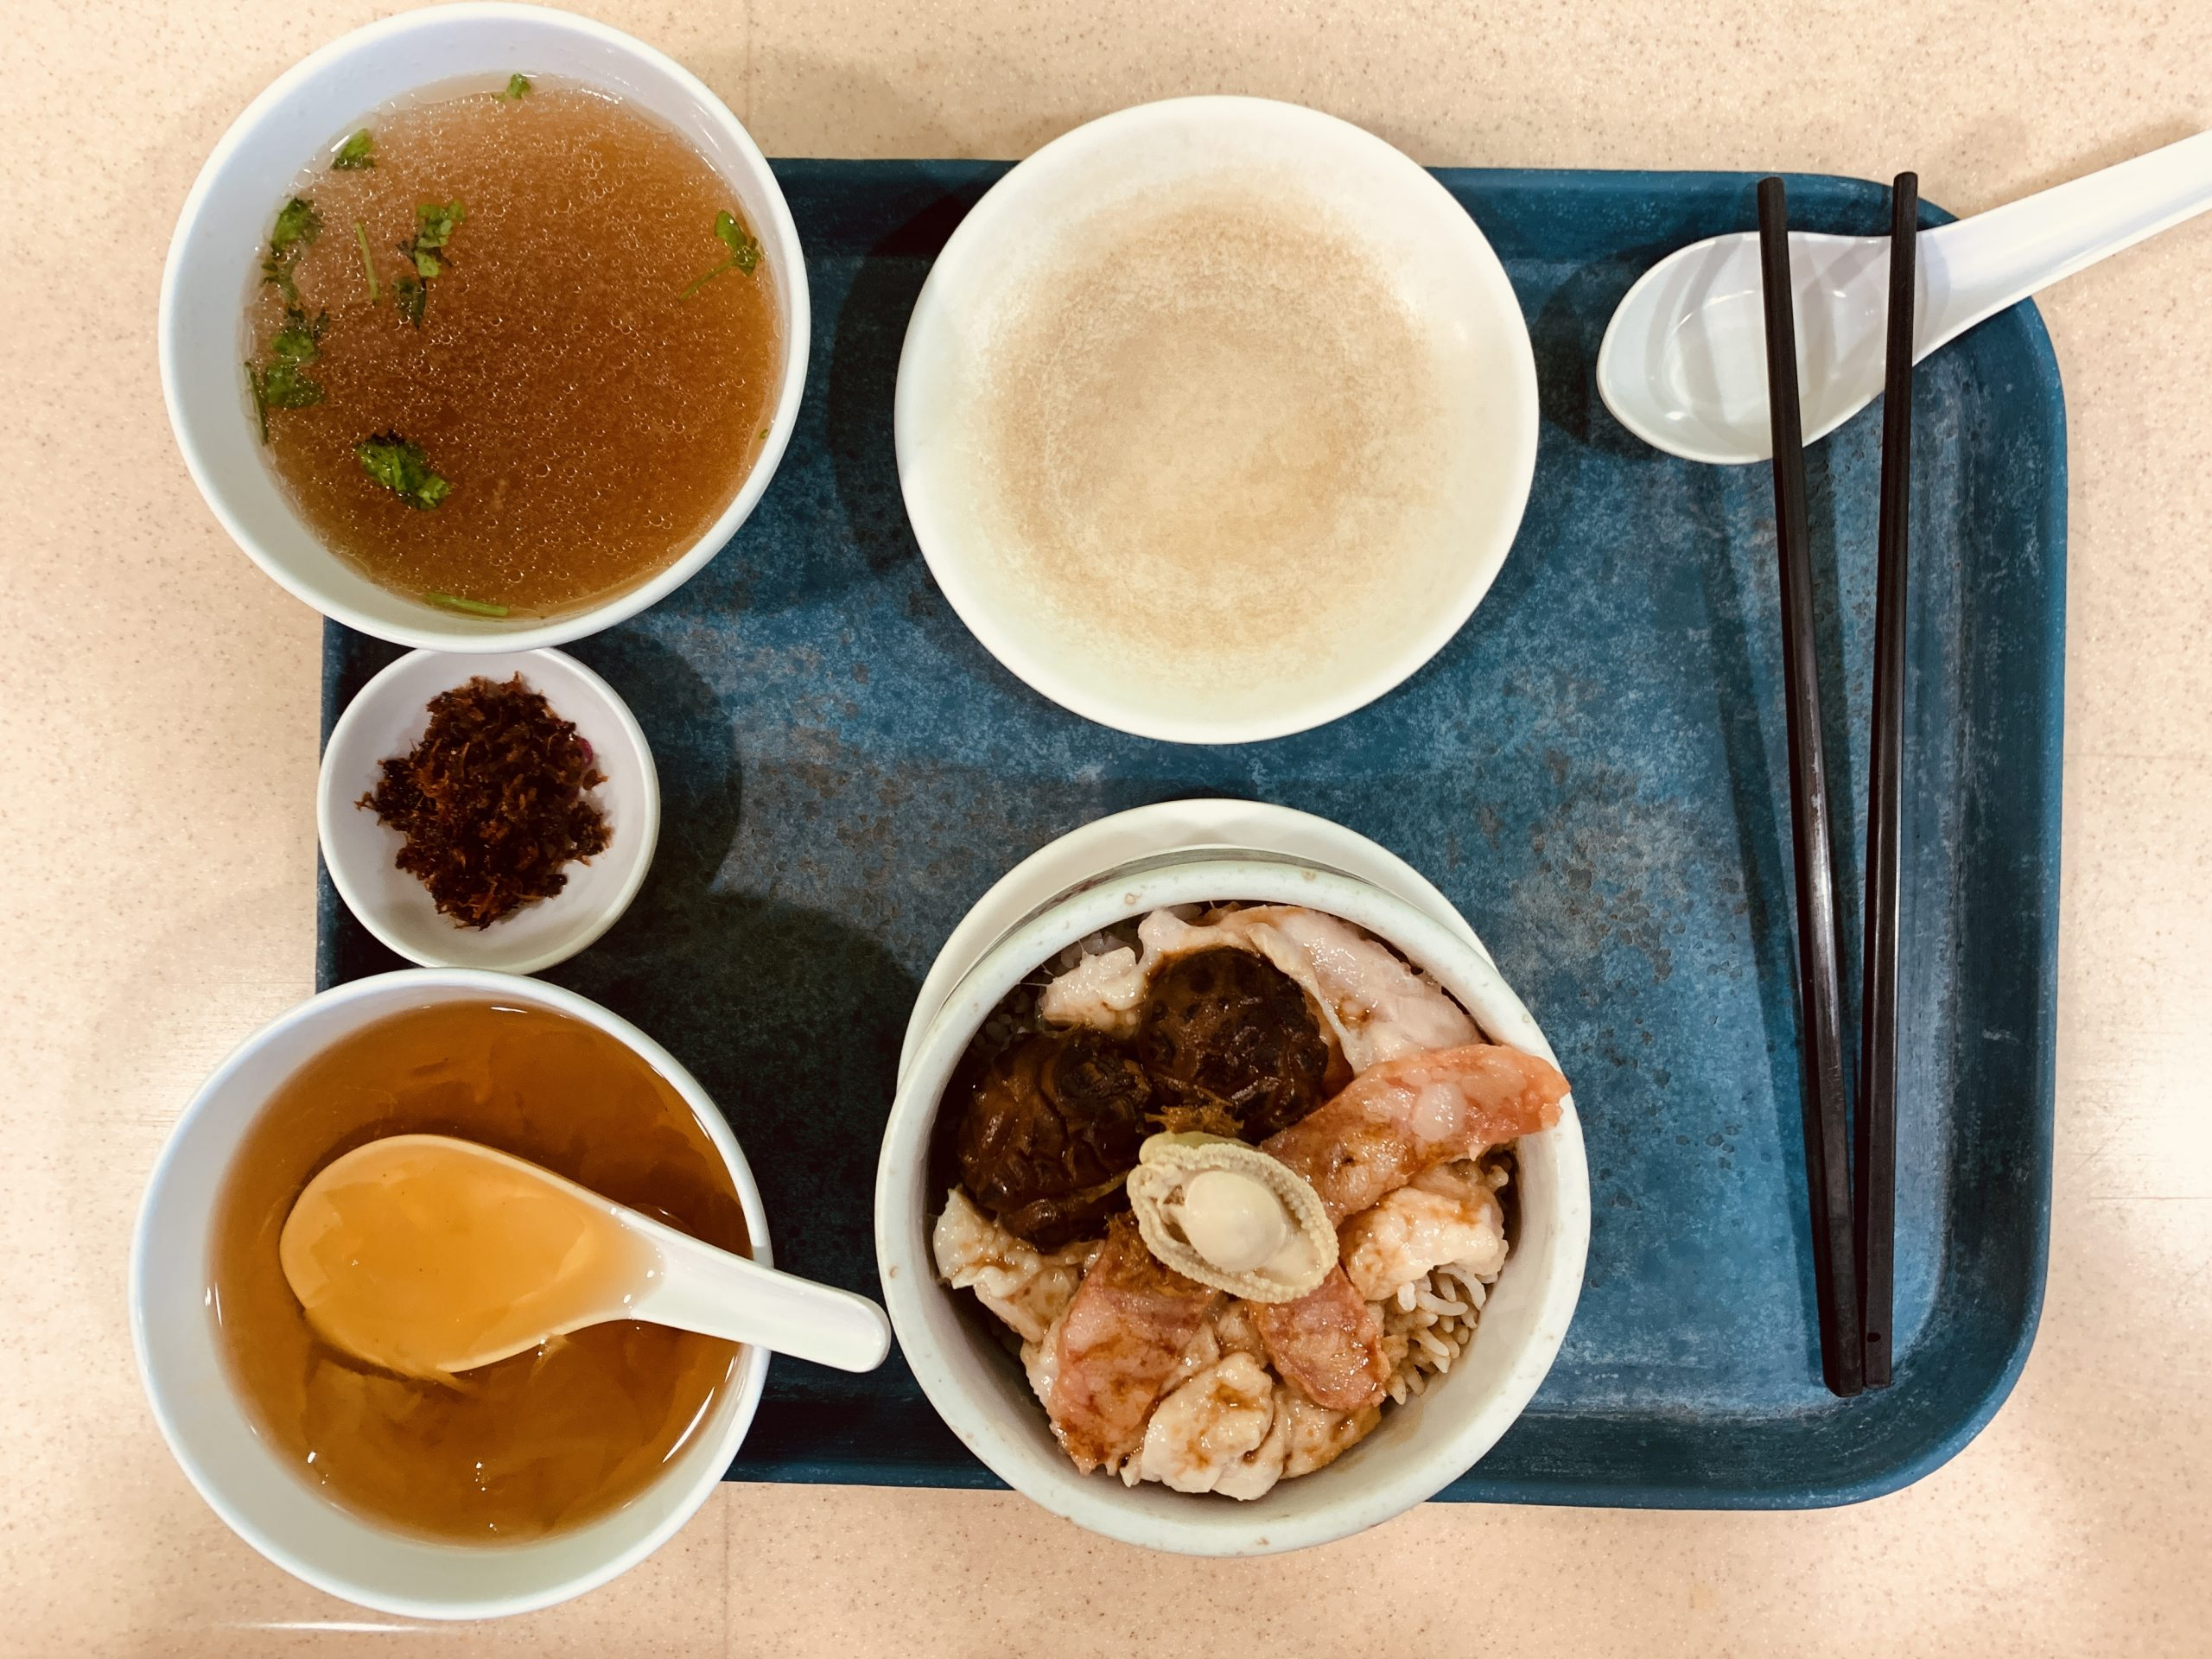 Rabbit Brand Seafood Delicacies - Set F Steamed Rice + Abalone + Scallop + Chicken + Chinese Tea (Hong Kong style)